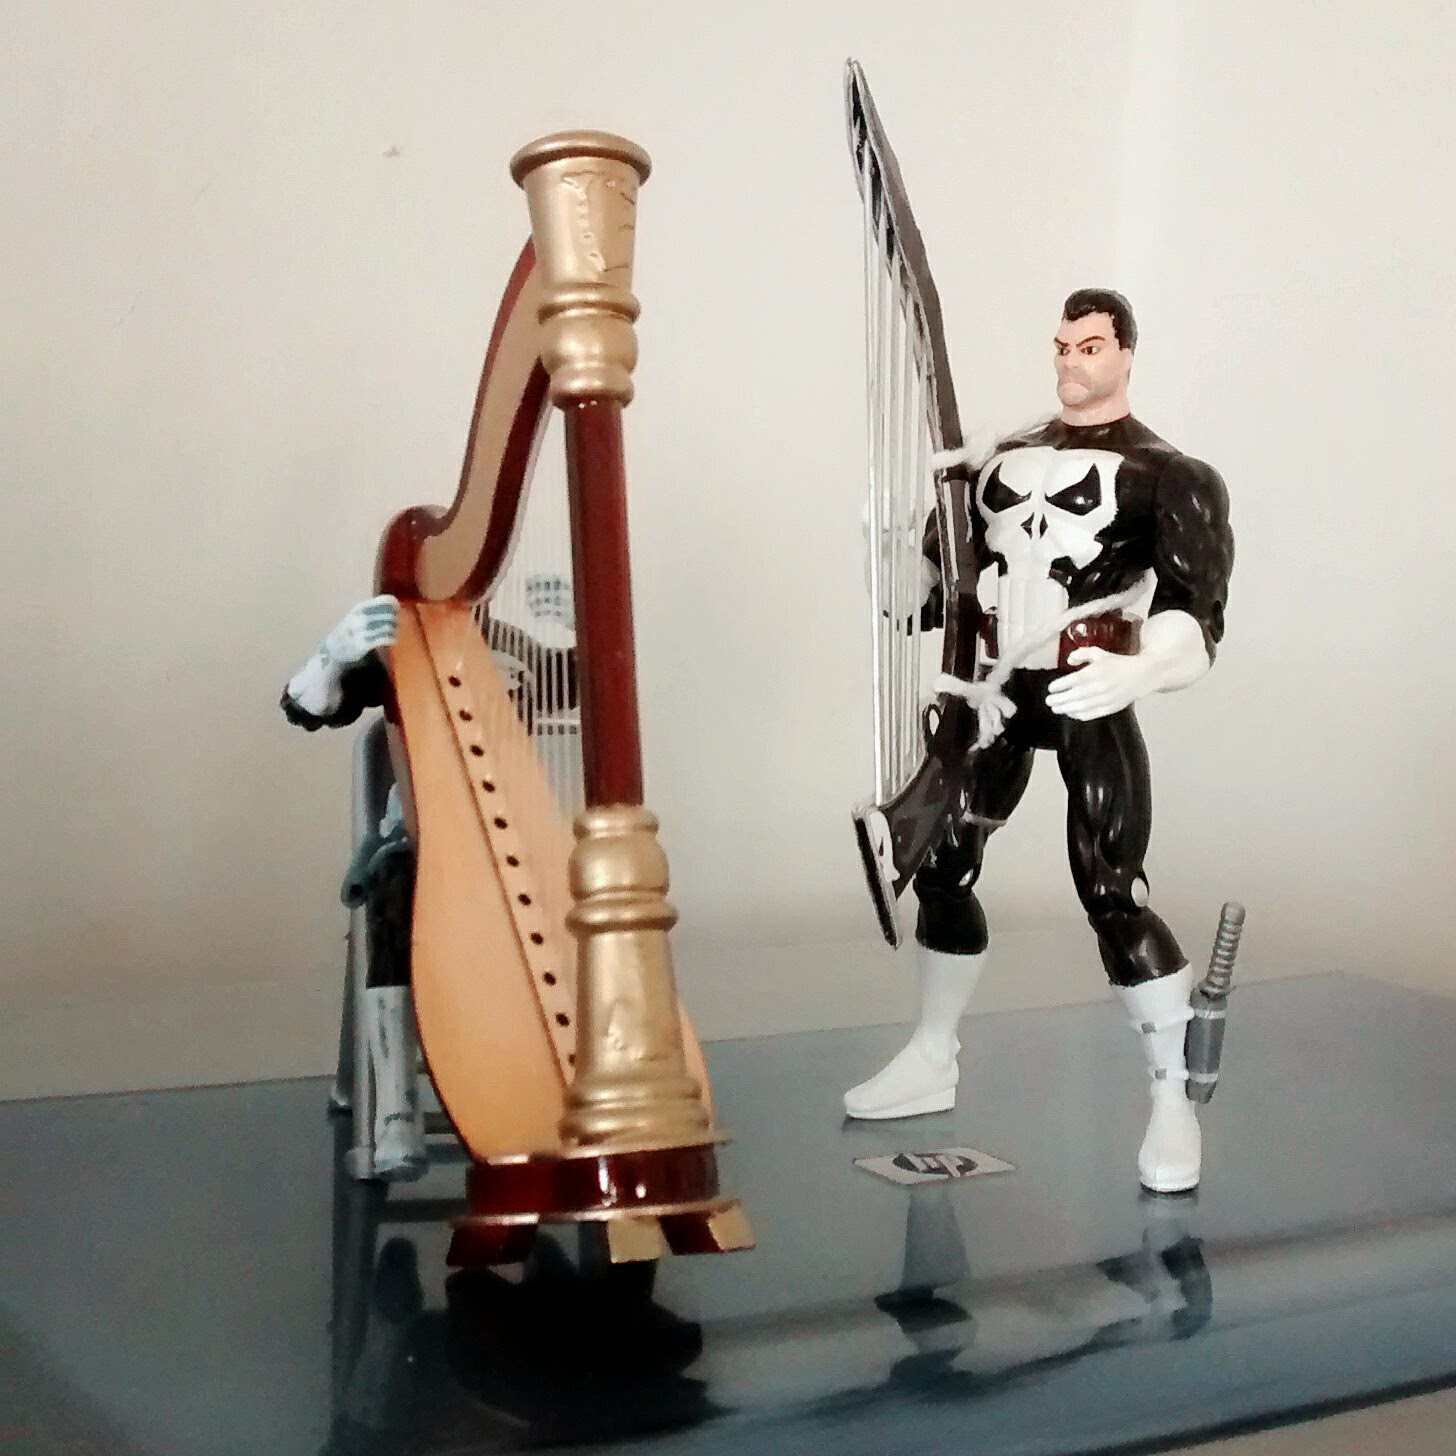 Here's a great duet performed by Marvel Universe's Punisher and the Toy Biz Punisher.